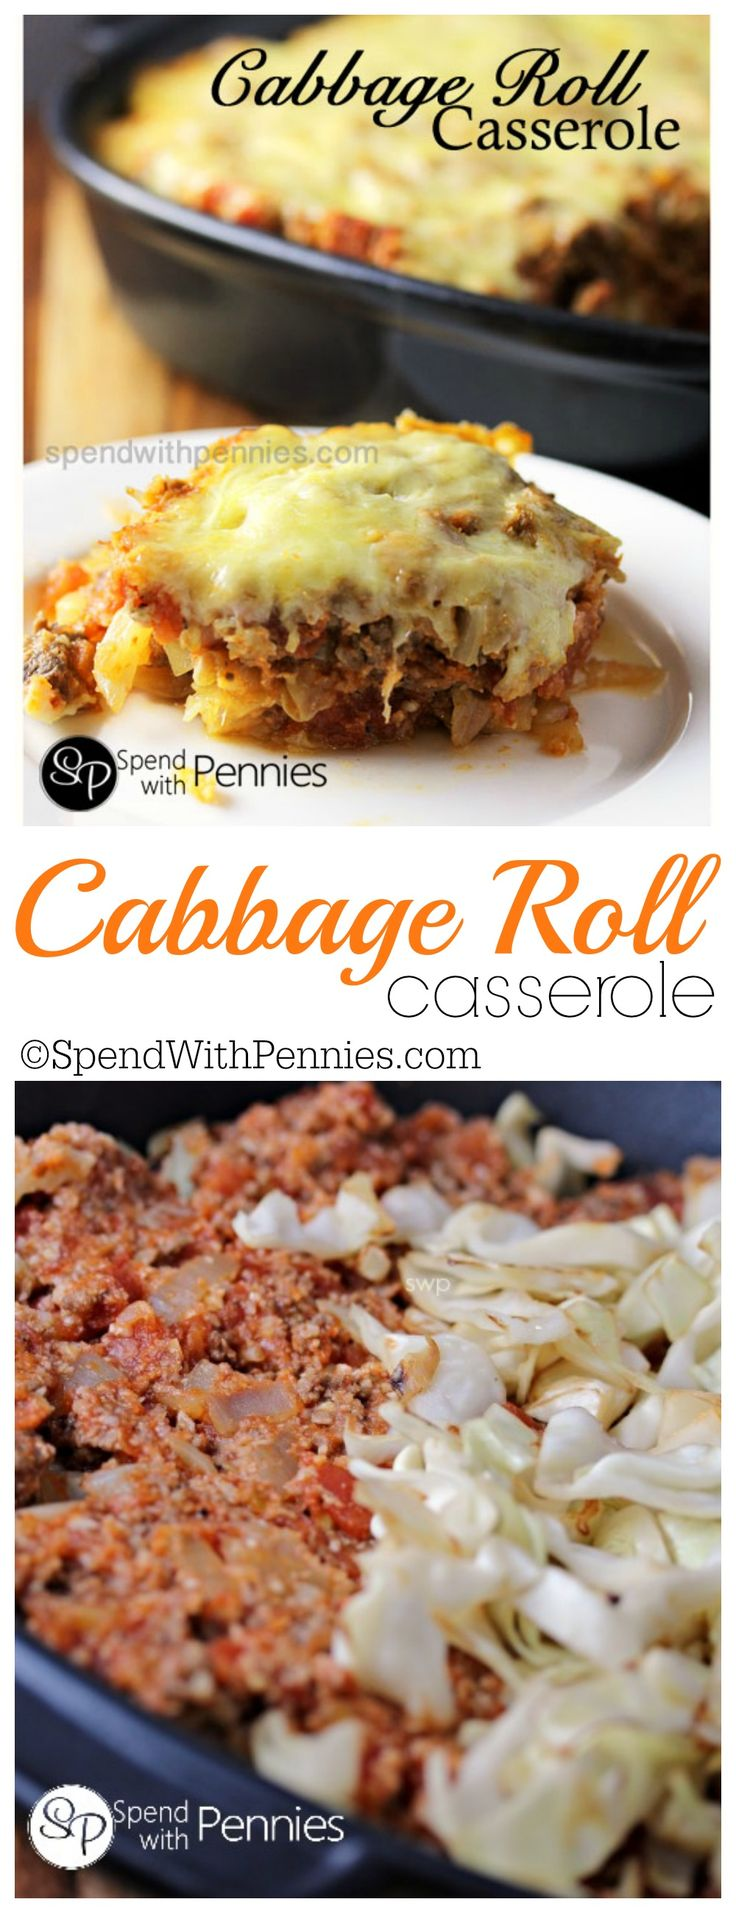 This Cabbage Roll Casserole recipes layers all of the delicious flavors of cabbage rolls without the rolling! Quick and easy comfort food! (Boiled Cabbage Recipes)